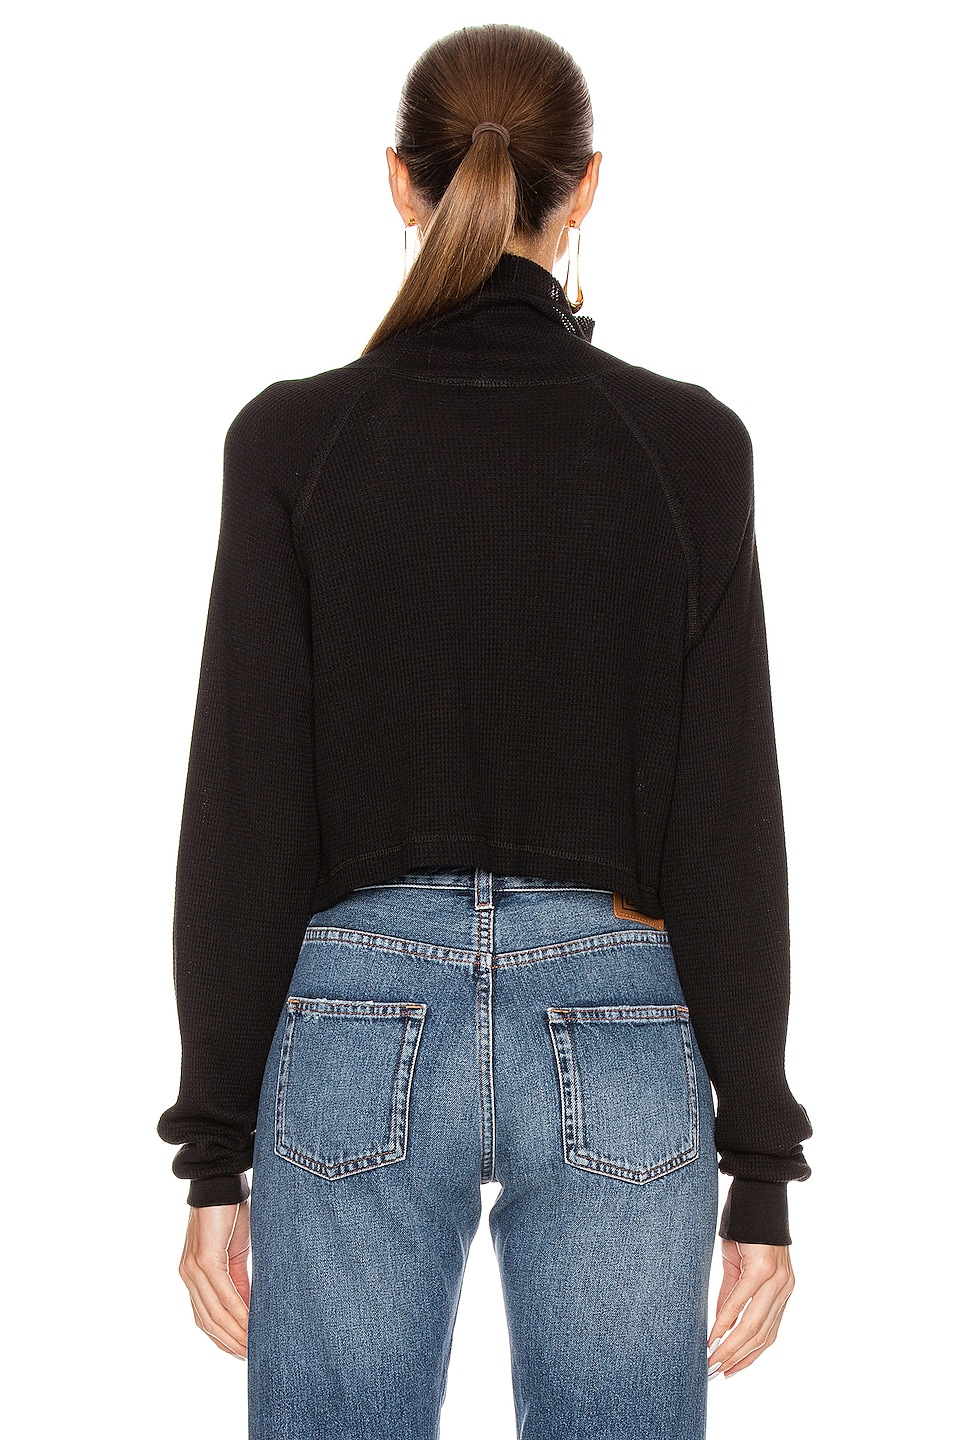 Image 3 of The Range Stark Waffle Knit Cropped Turtleneck in Jet Black